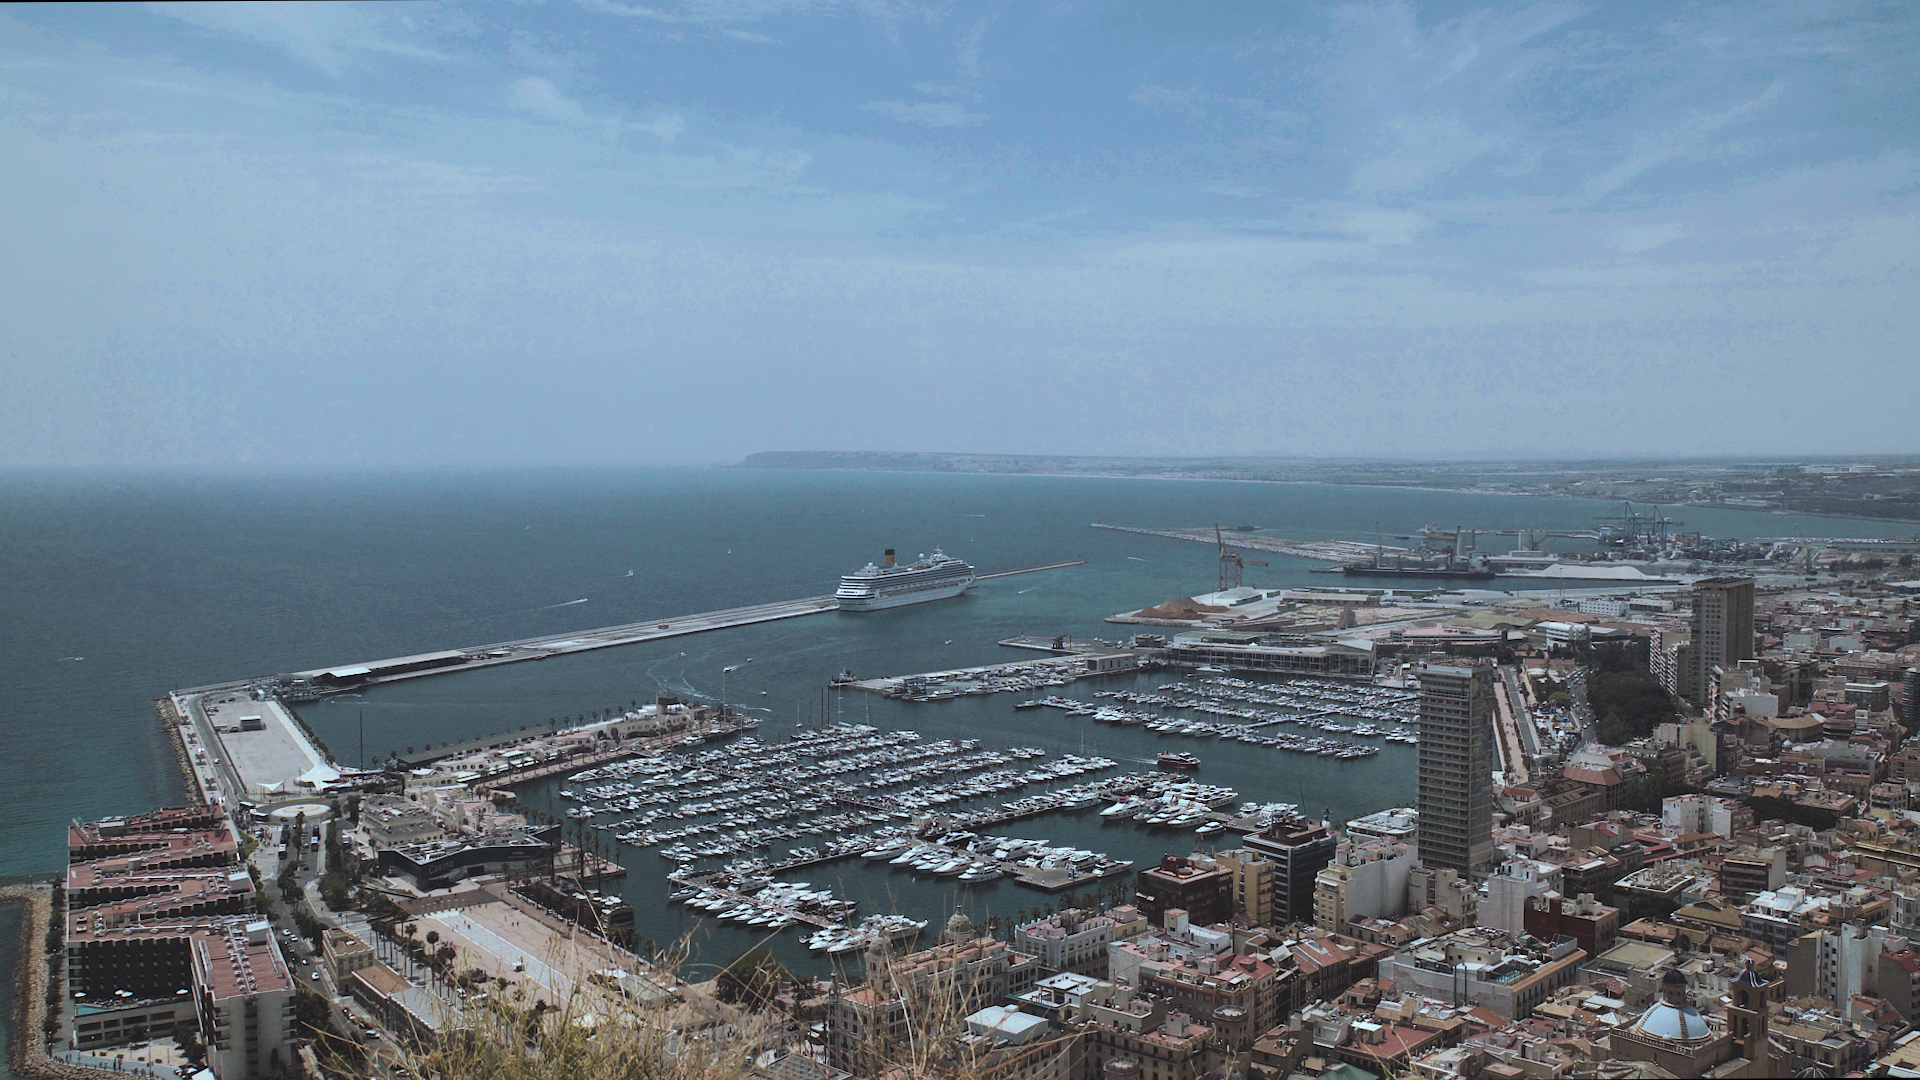 View of the Alicante Marina.